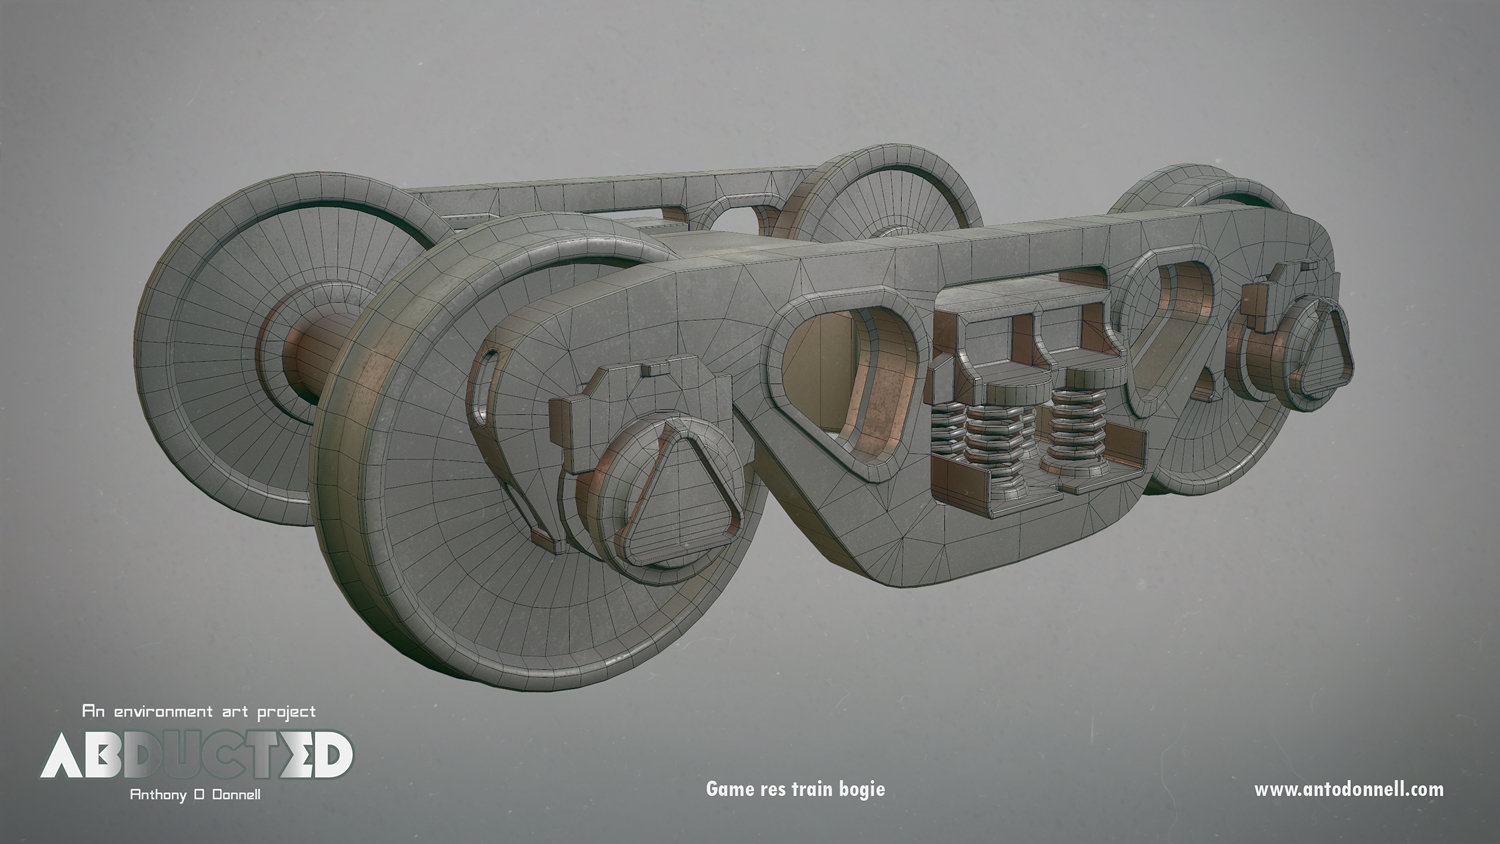 Wireframe of the game res bogie